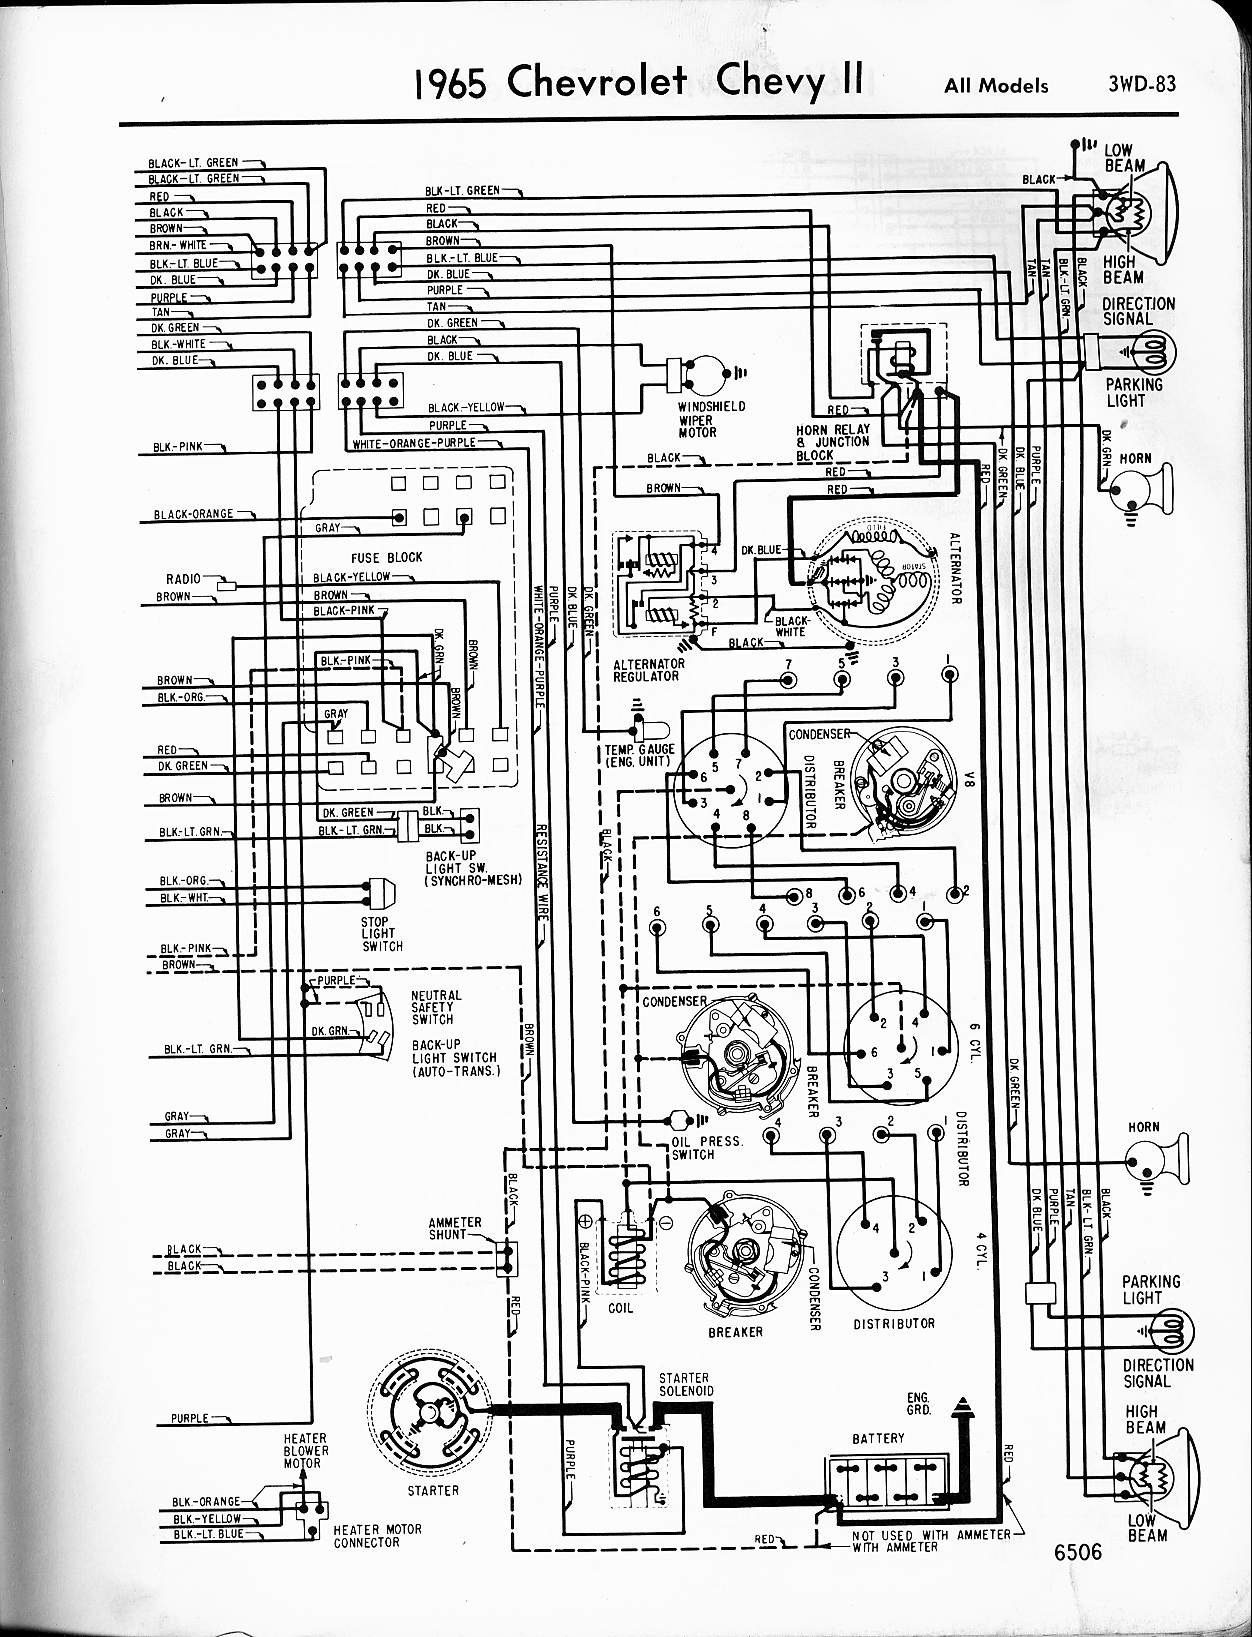 hight resolution of 57 65 chevy wiring diagrams 1965 chevy c20 wiring diagram 1965 chevy ii all models